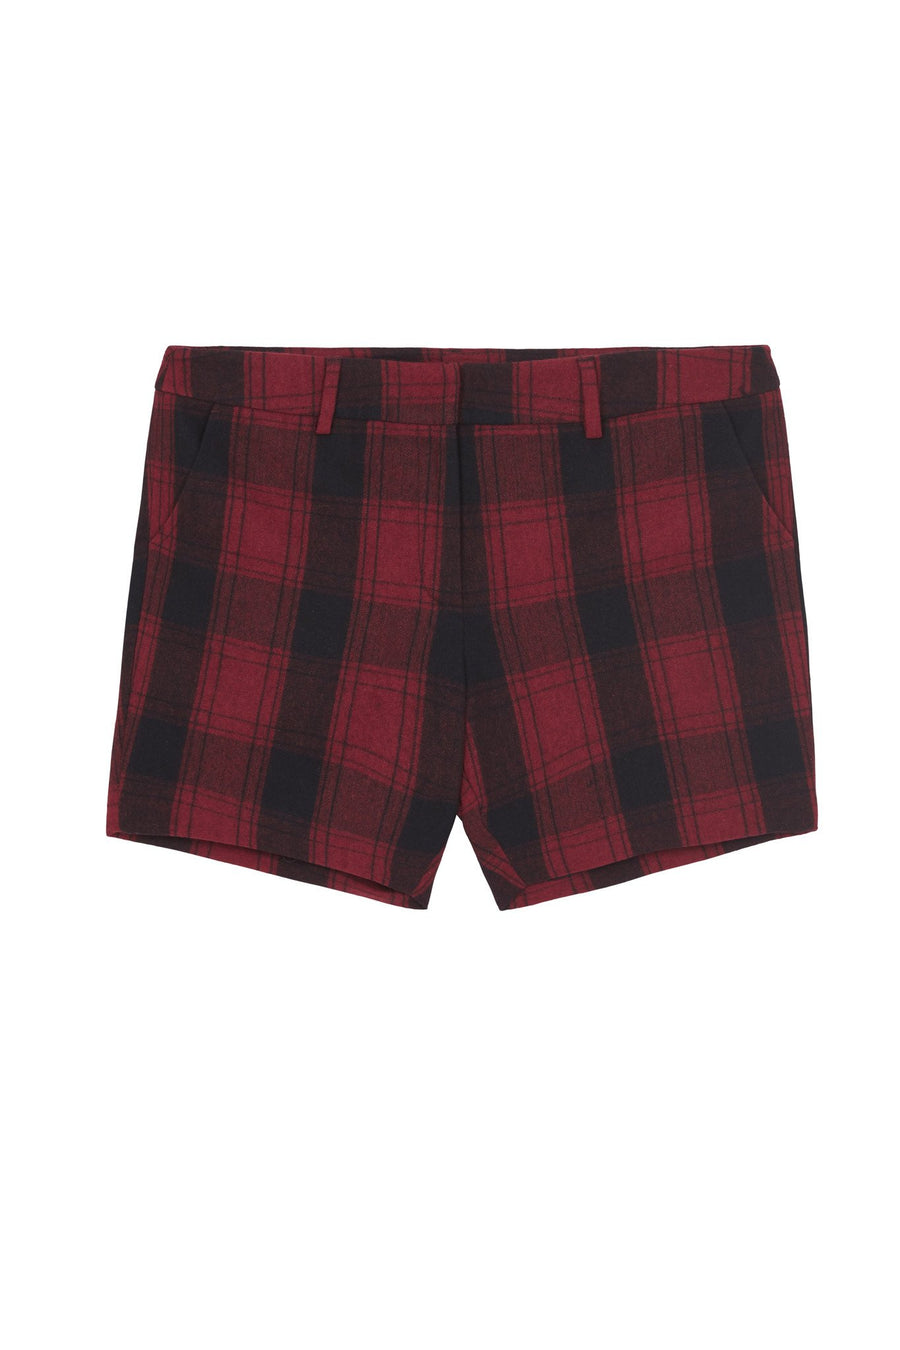 Red Plaid Emery Park Trouser Skinny M.I.N.Y. Pant™